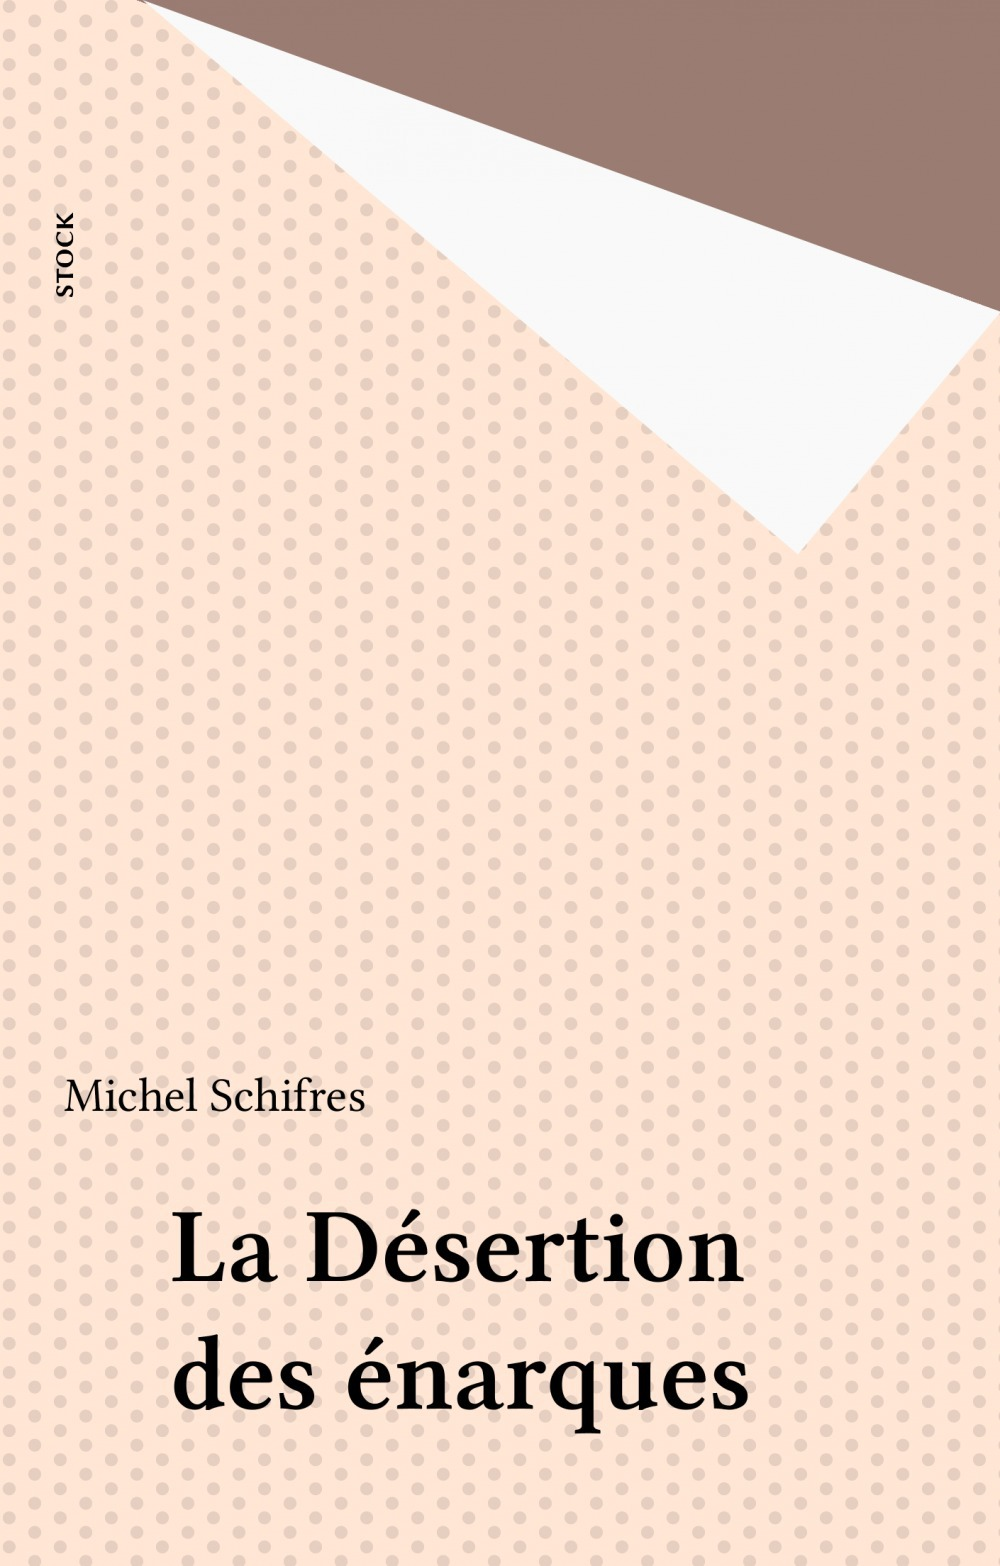 La desertion des enarques